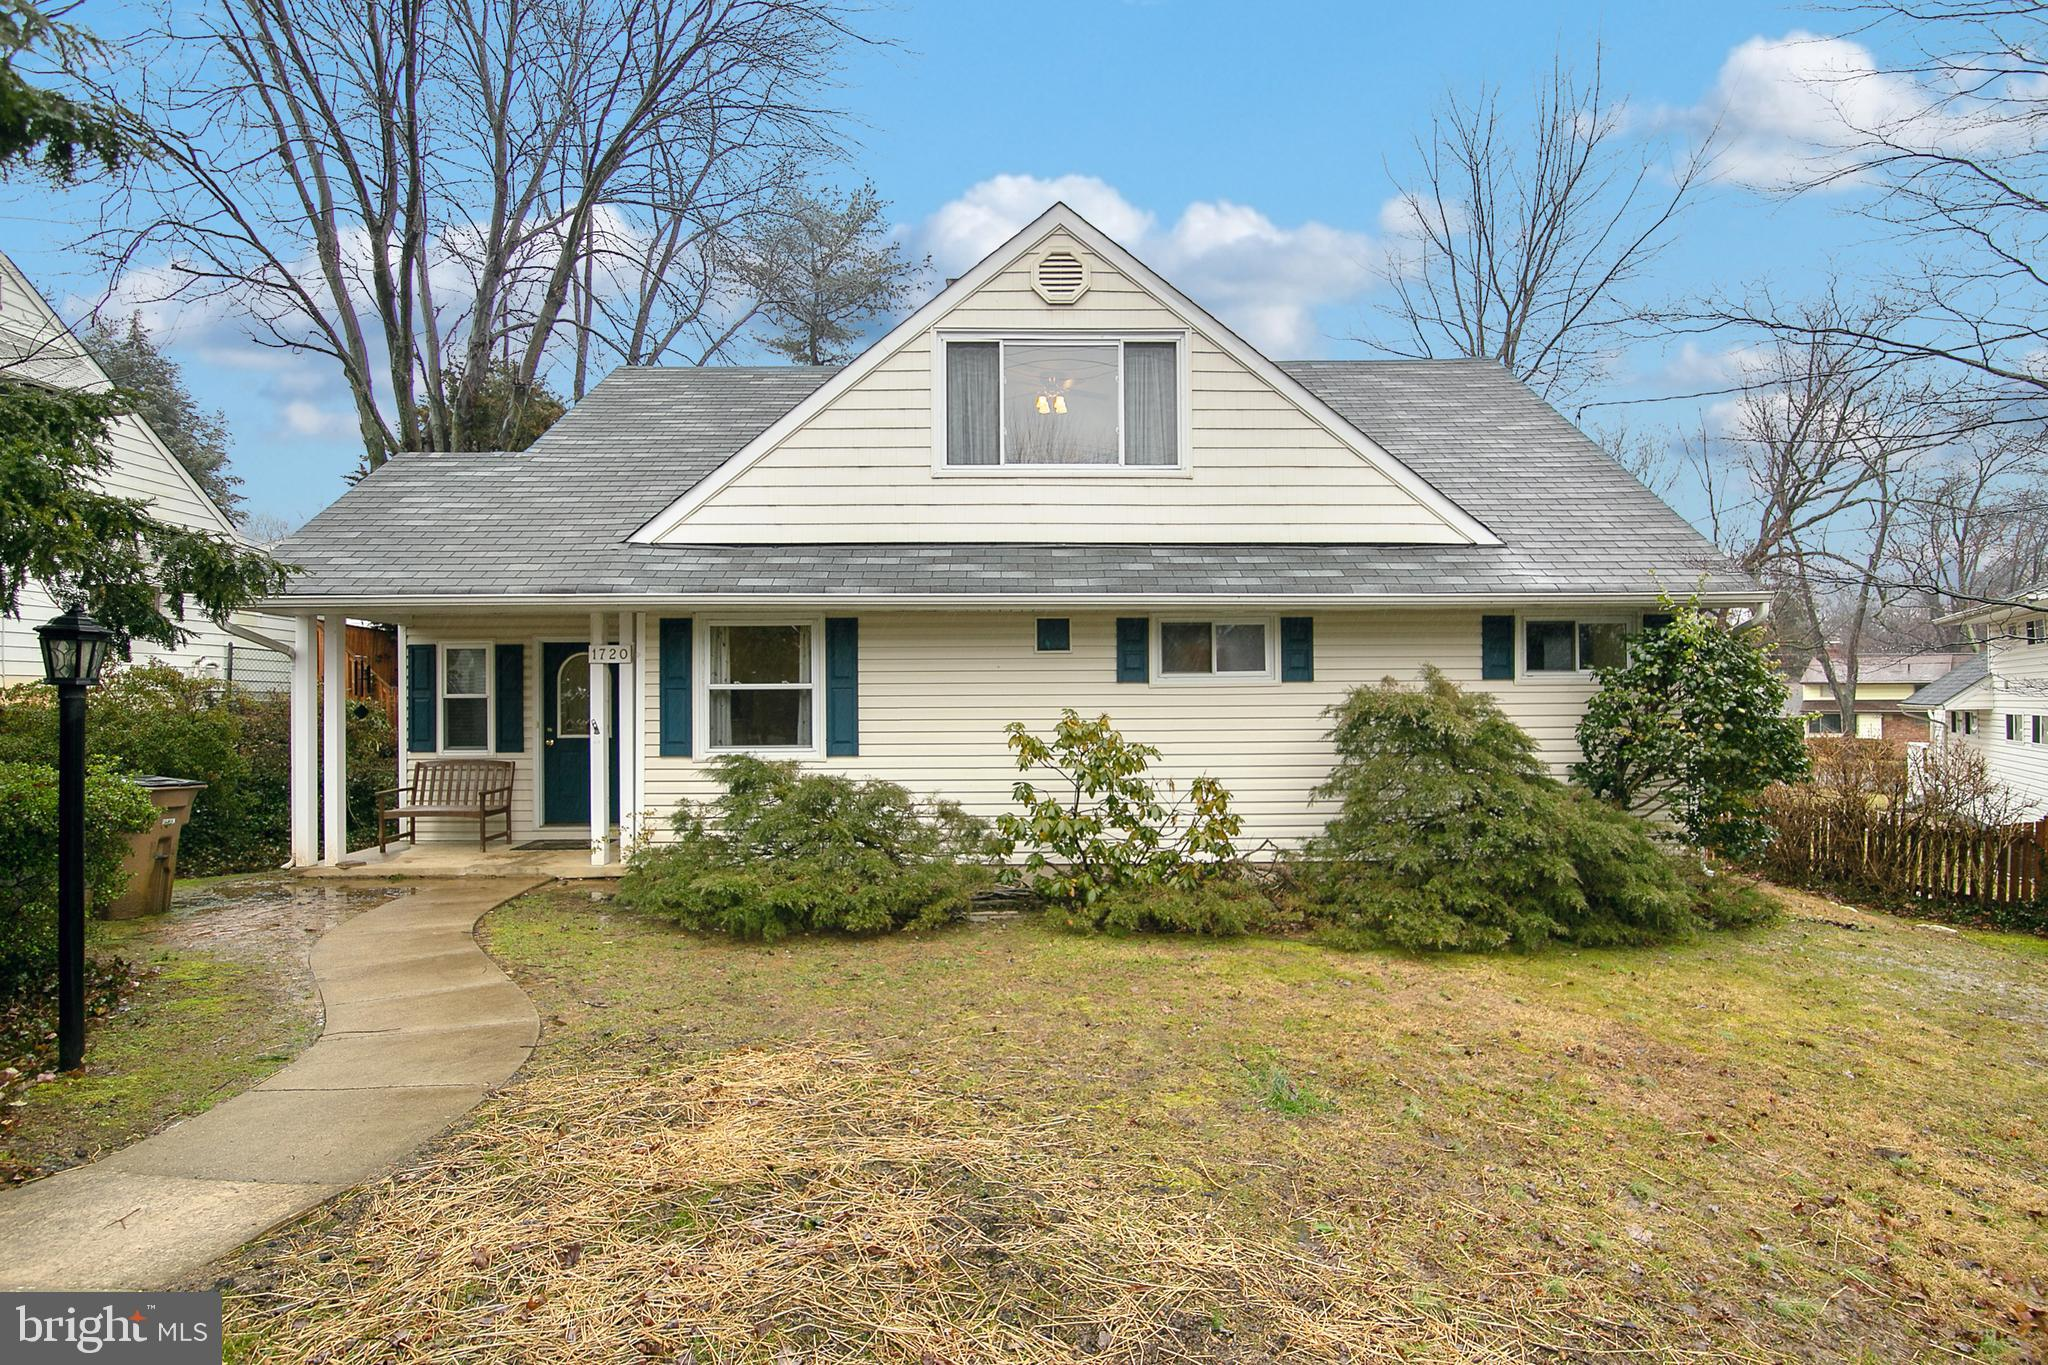 1720 VEIRS MILL ROAD, ROCKVILLE, MD 20851